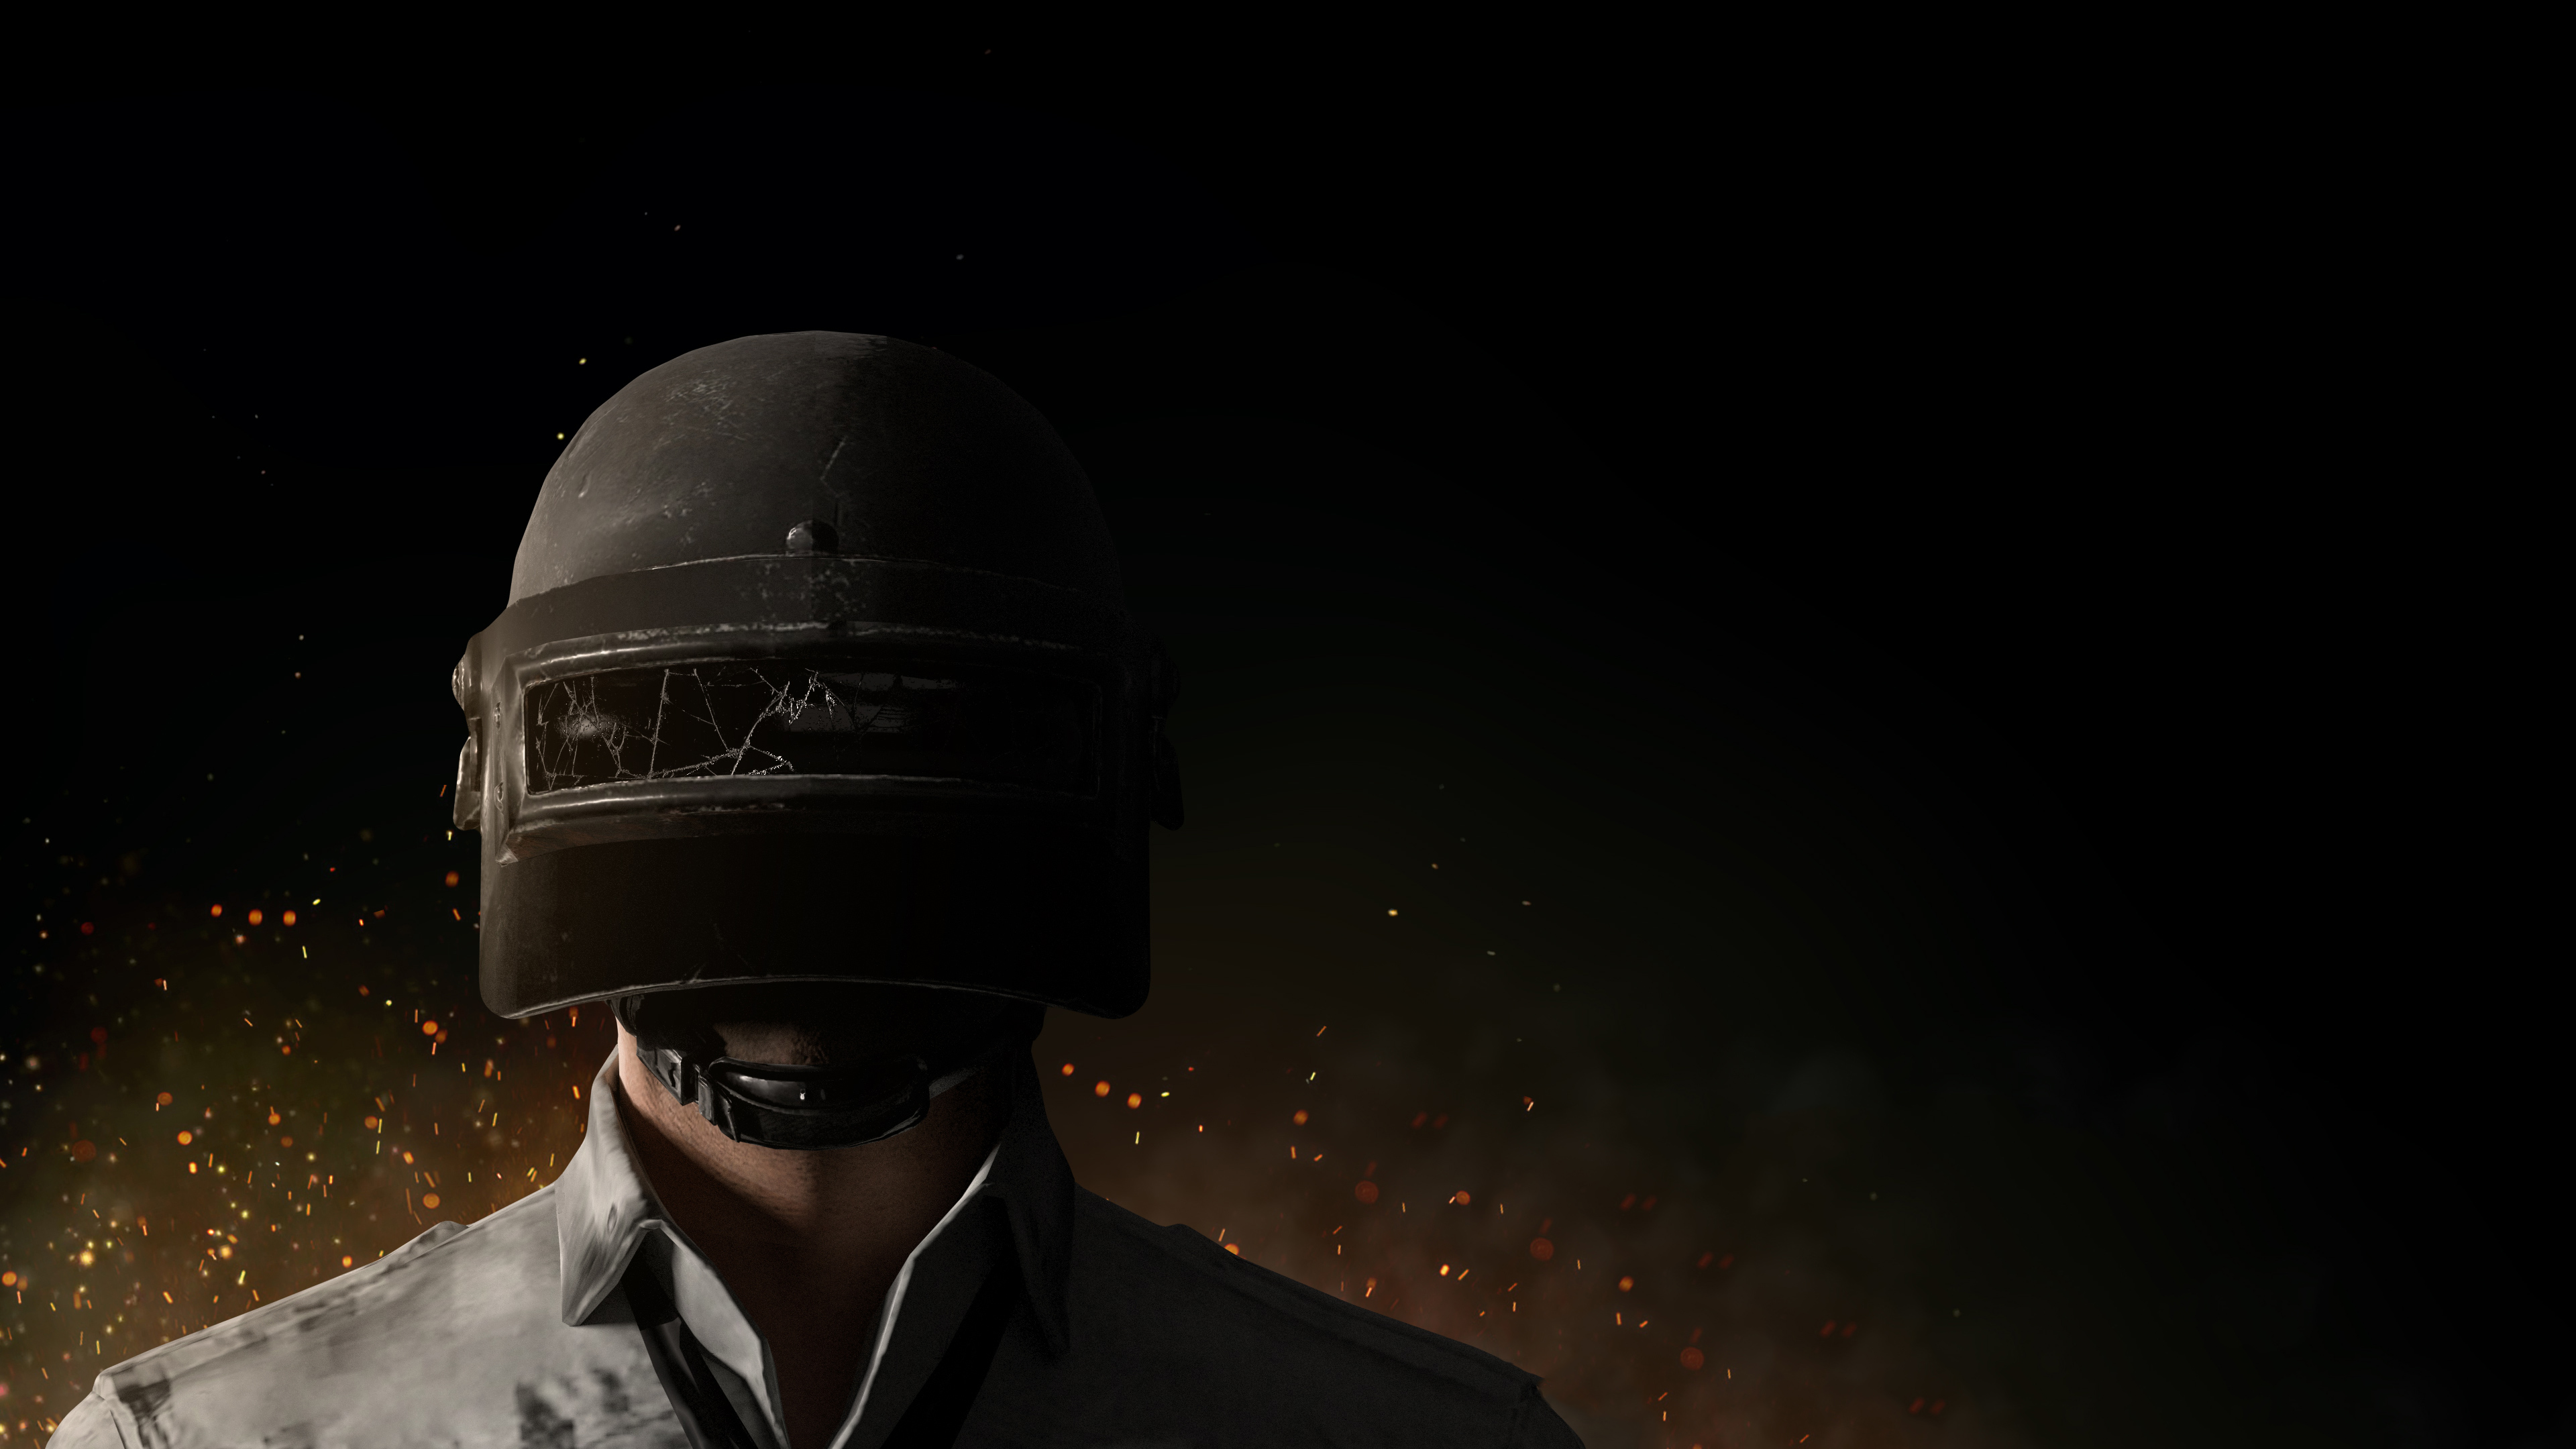 Pubg Hd Wallpaper Iphone: PUBG Helmet Guy 4k, HD Games, 4k Wallpapers, Images